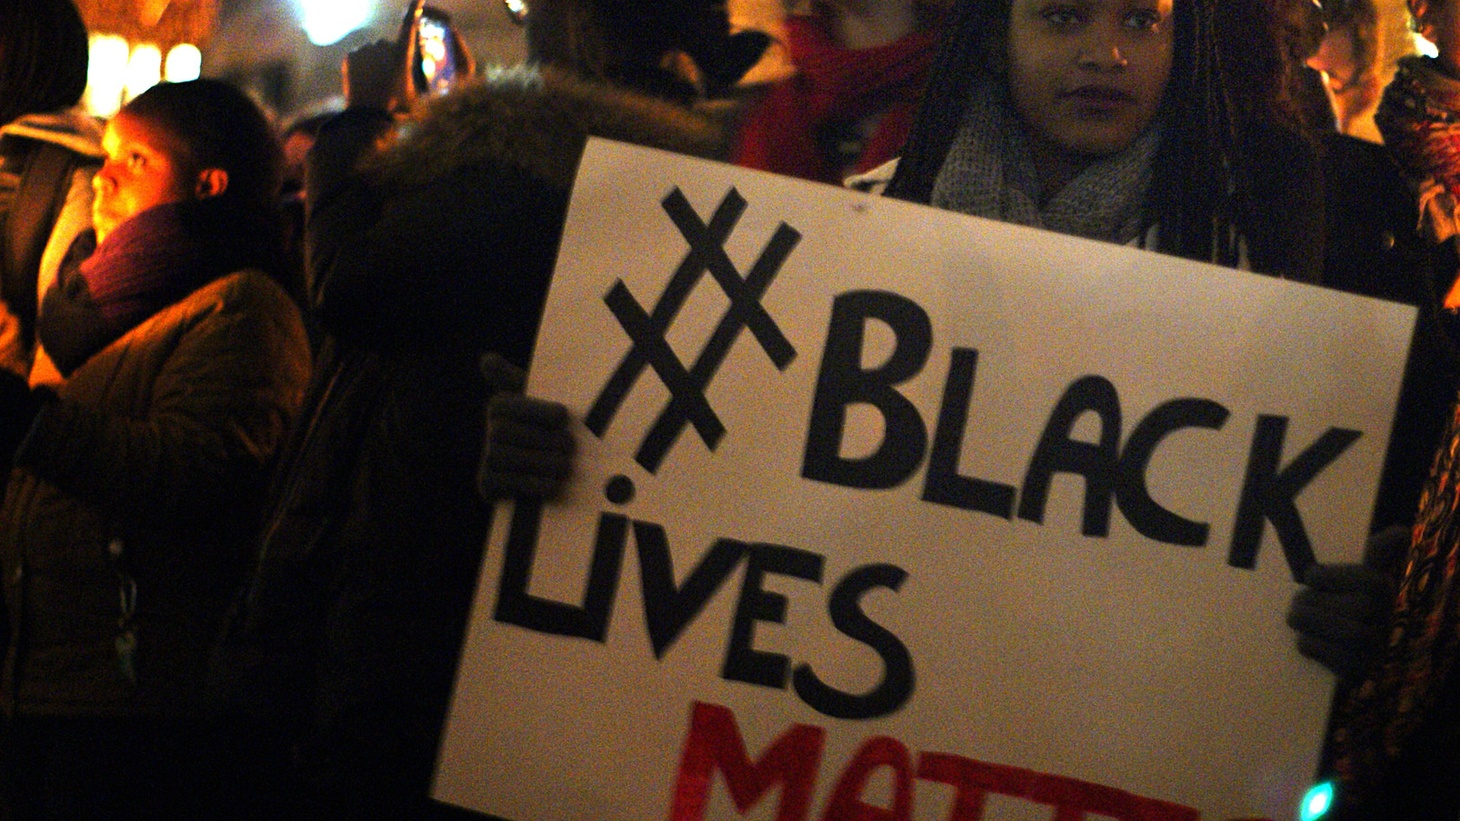 Today we take a look at the political power of black millennials. Will their activism with Black Lives Matter and other movements have as big an impact at the polls as it has in other ways?